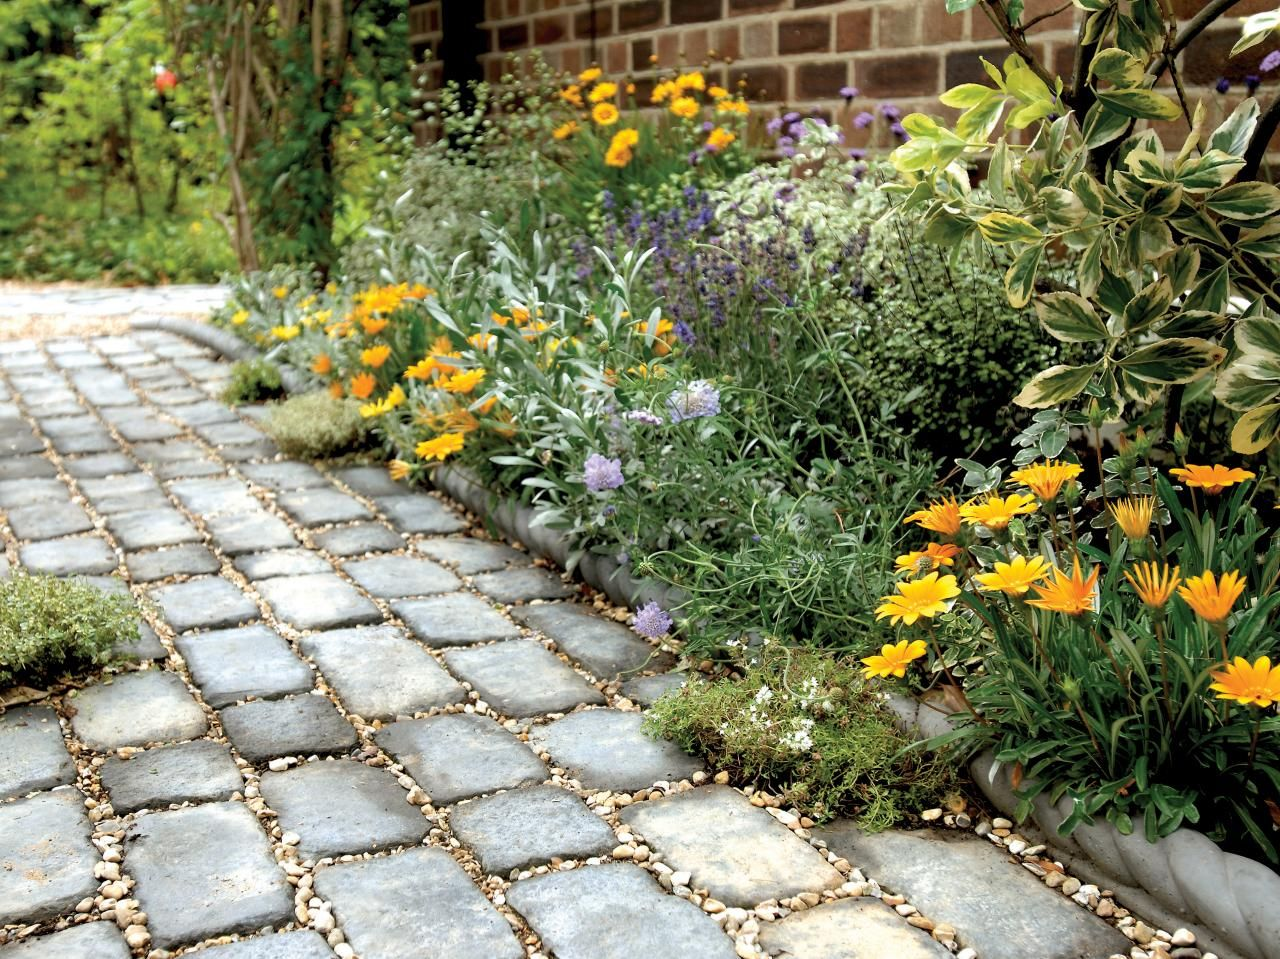 How to Build a Stone Path | Paths, Garden paths and Landscaping ideas